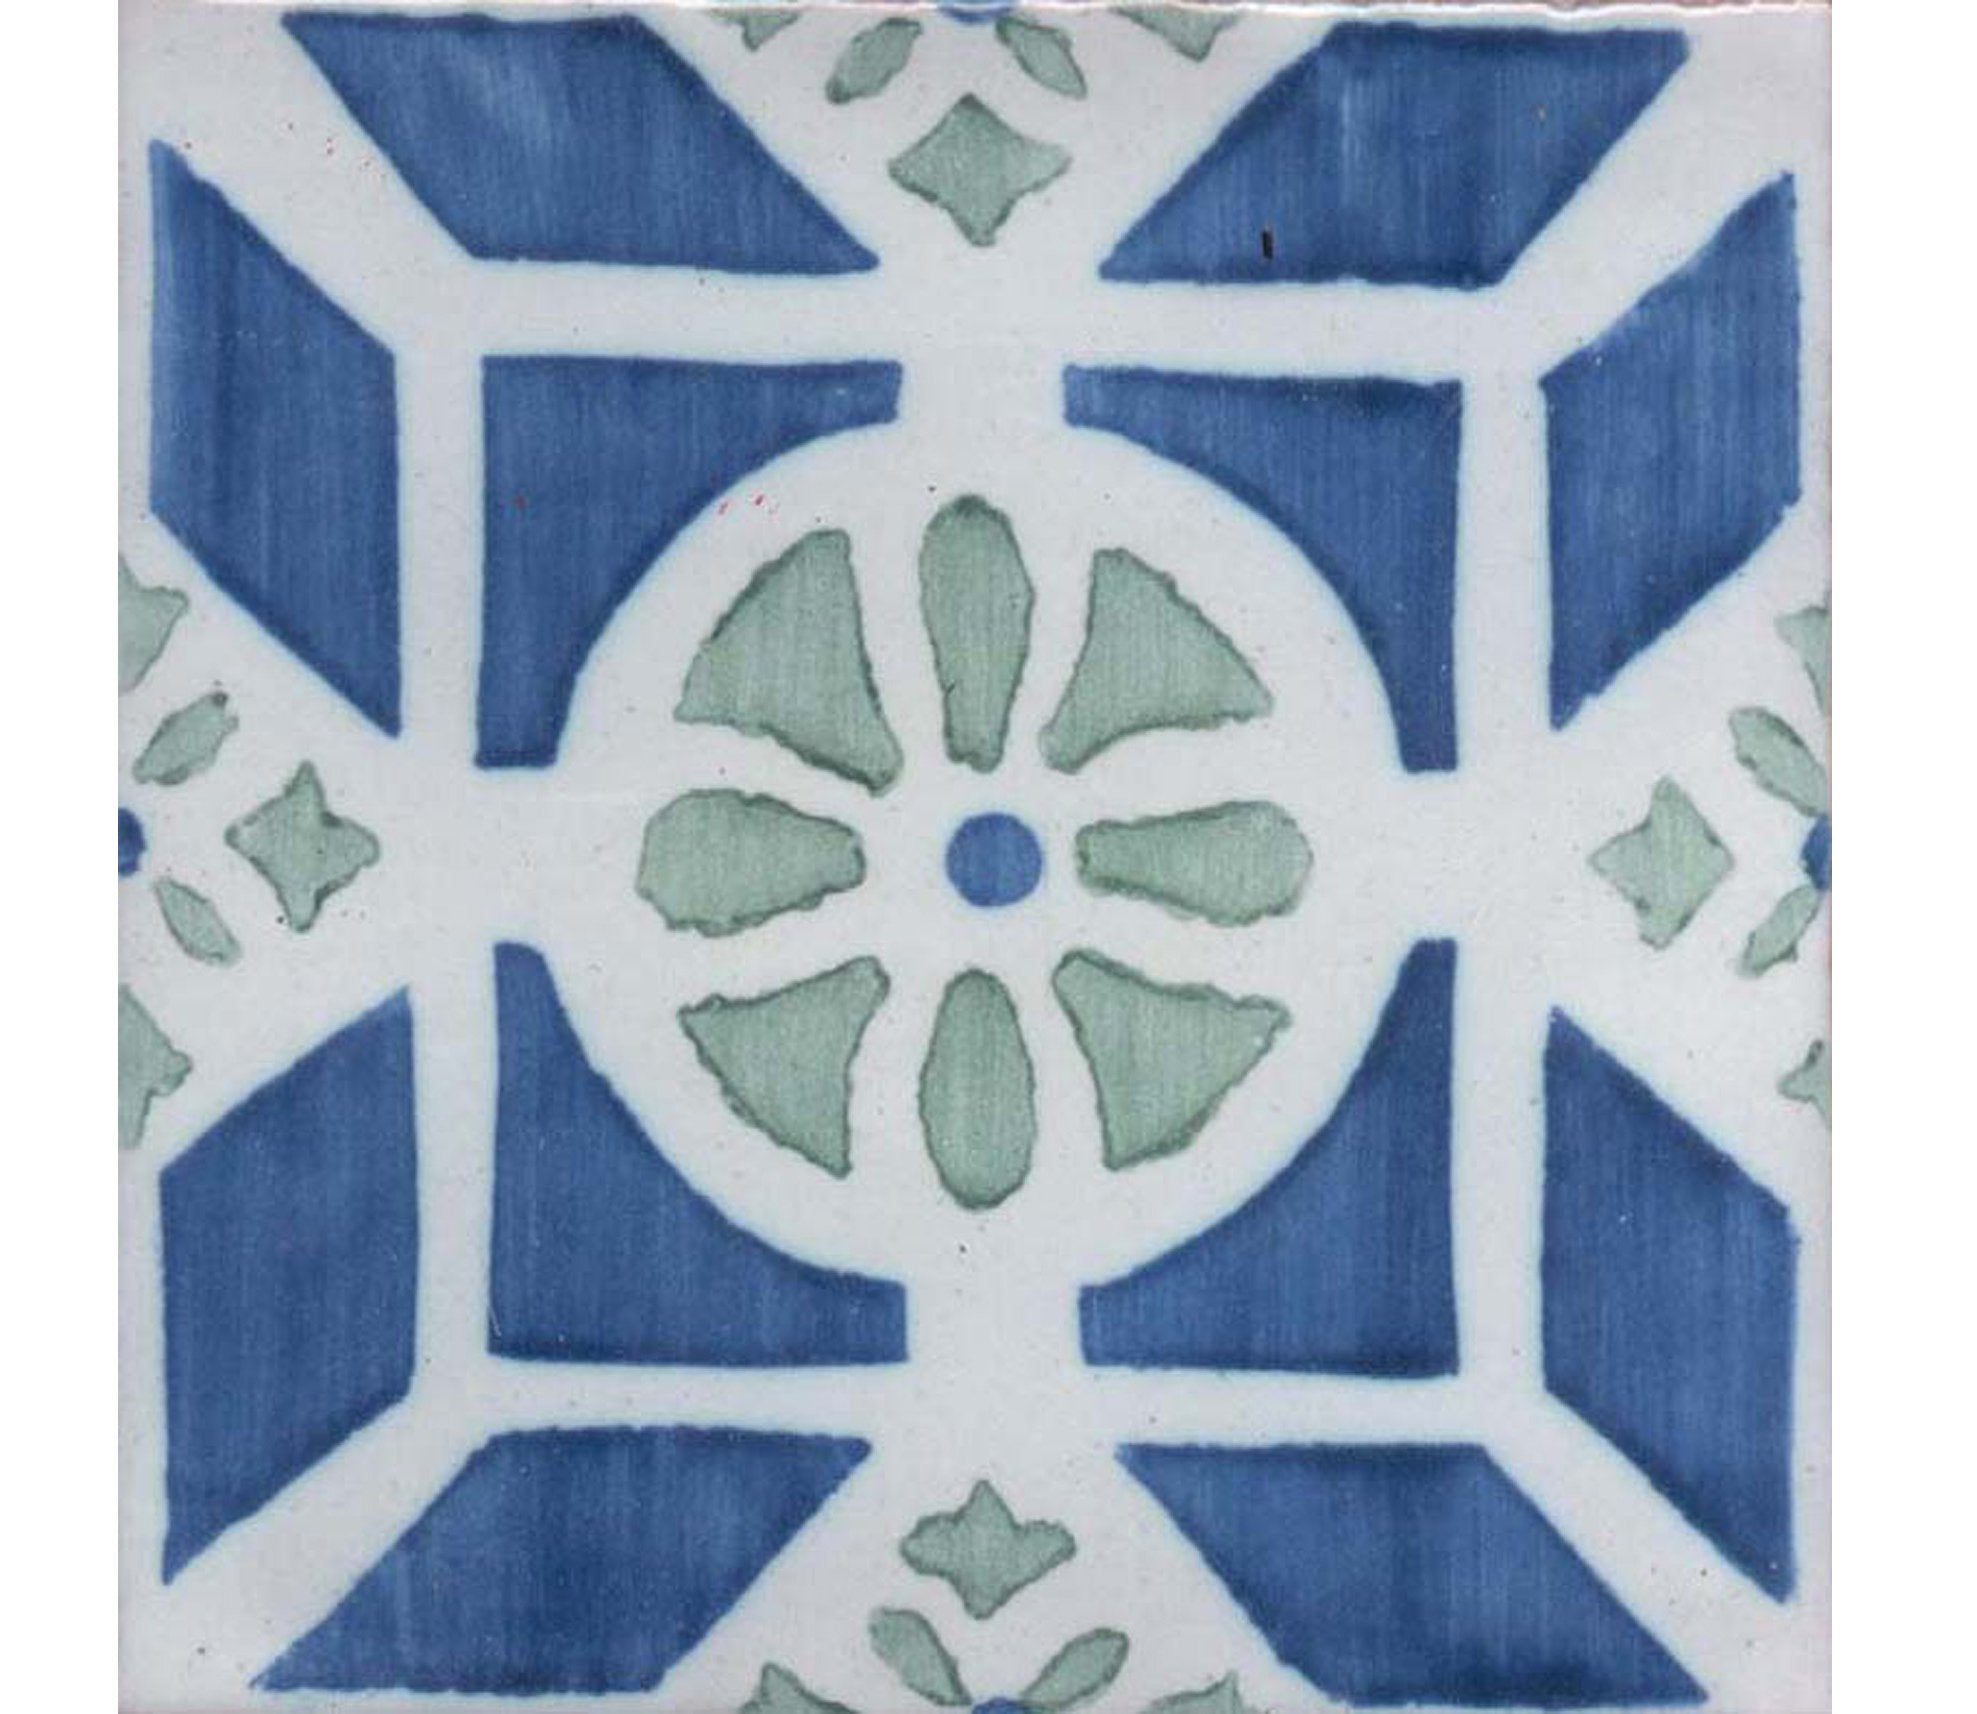 Series S Handpainted Tiles Product Image 42